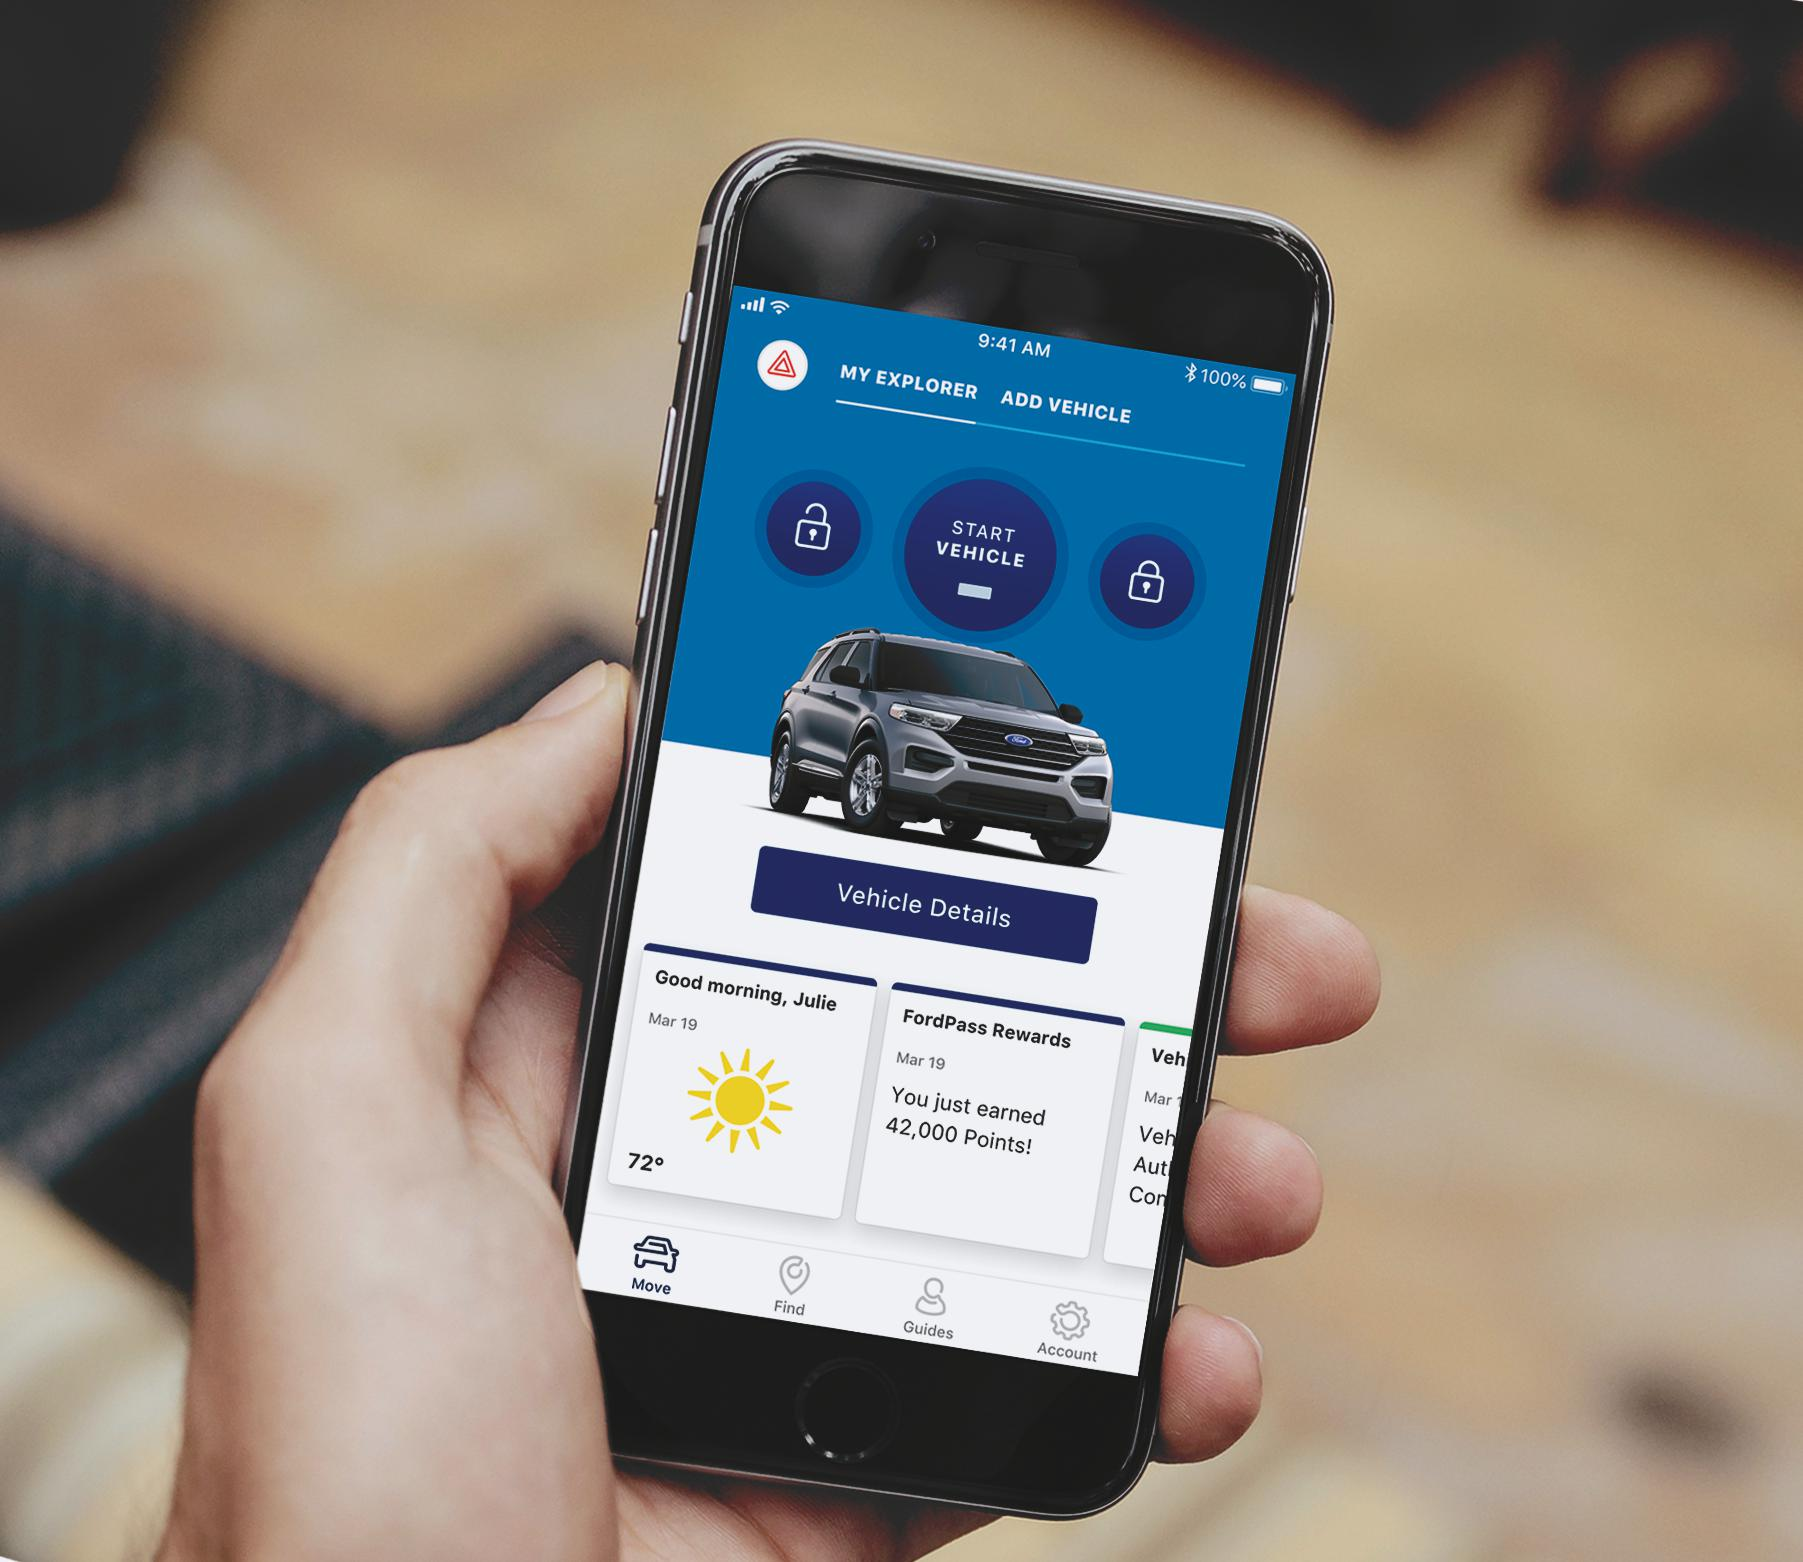 FordPass, powered by FordPass Connect service, previously available through one, two or five-year trial subscriptions depending on model year, will now be complimentary